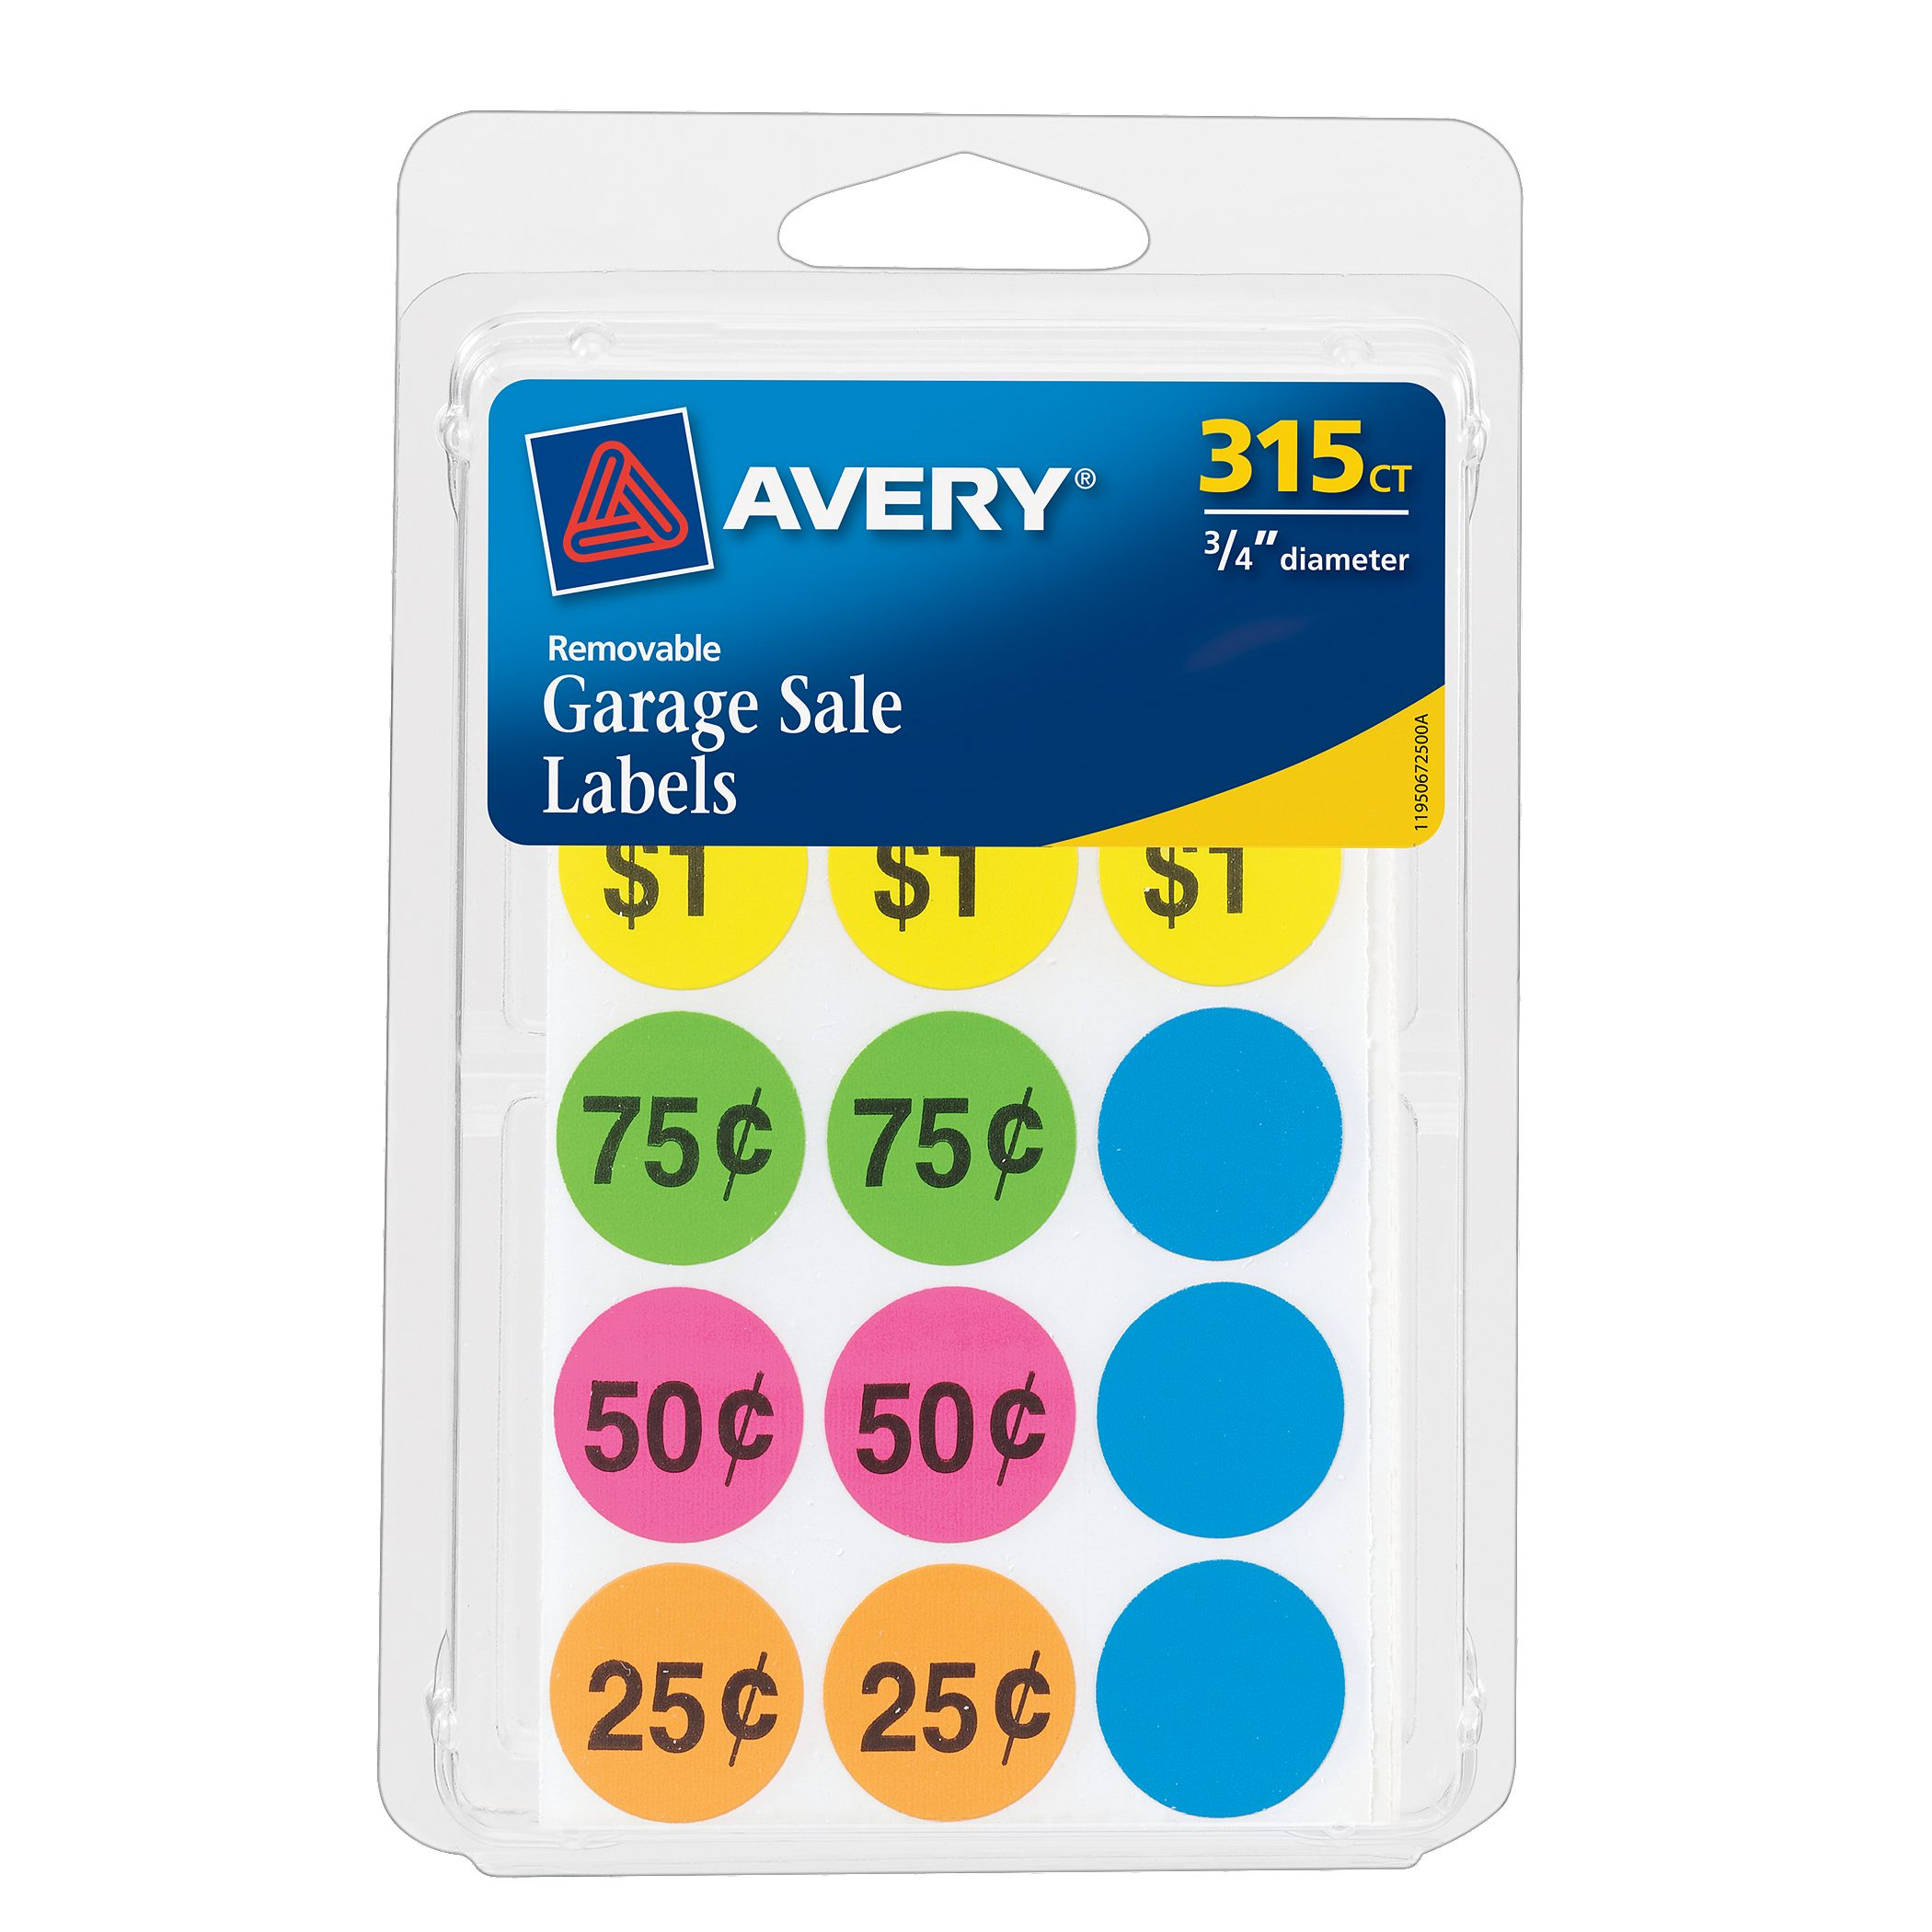 "Avery Assorted Neon Removable Garage Sale Labels  3/4"" Round, Pack of 315 (06725)"